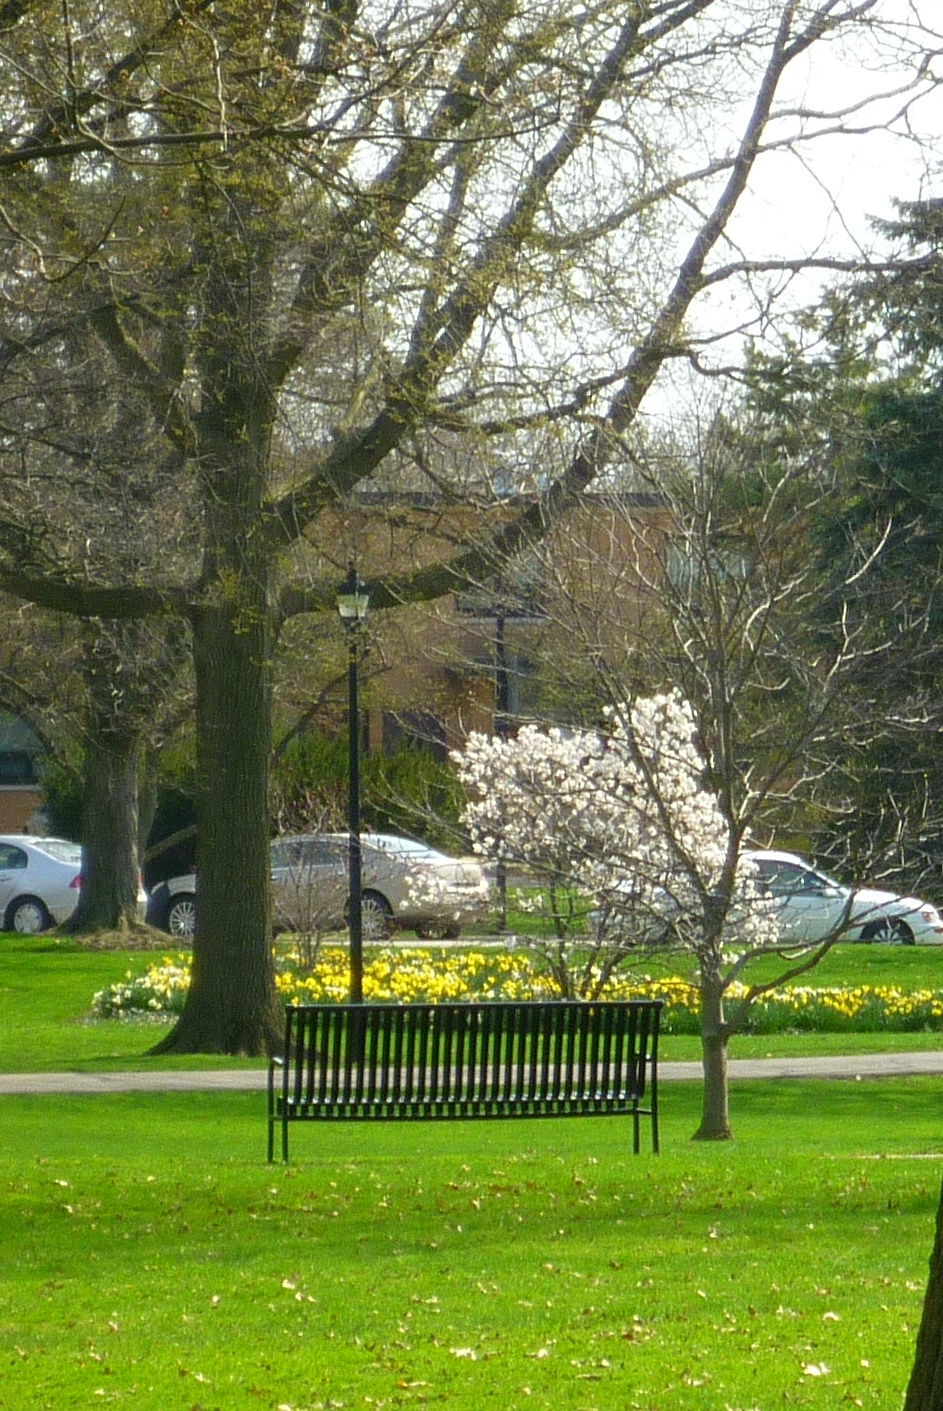 A bench in Tappan Square